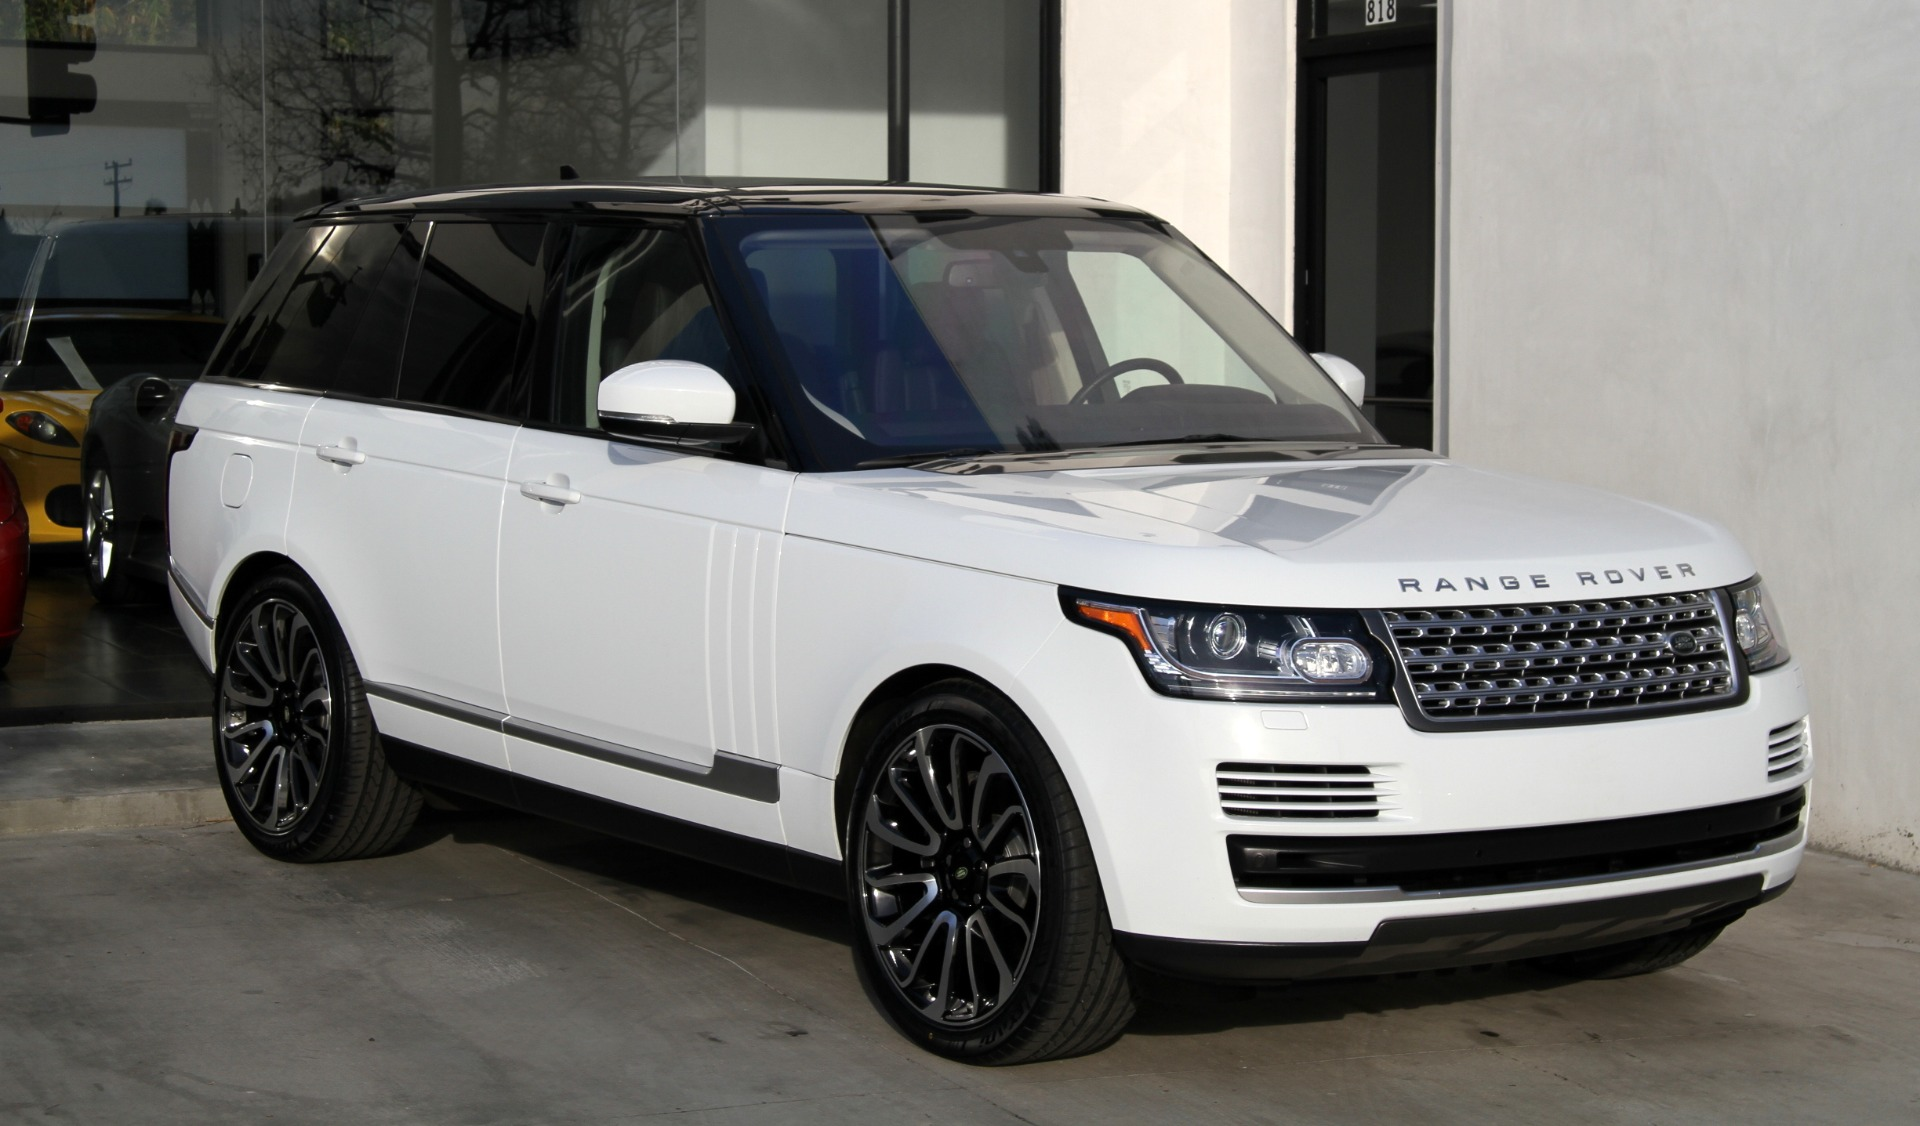 2016 Land Rover Range Rover Hse Stock 6092 For Sale Near Redondo Beach Ca Ca Land Rover Dealer